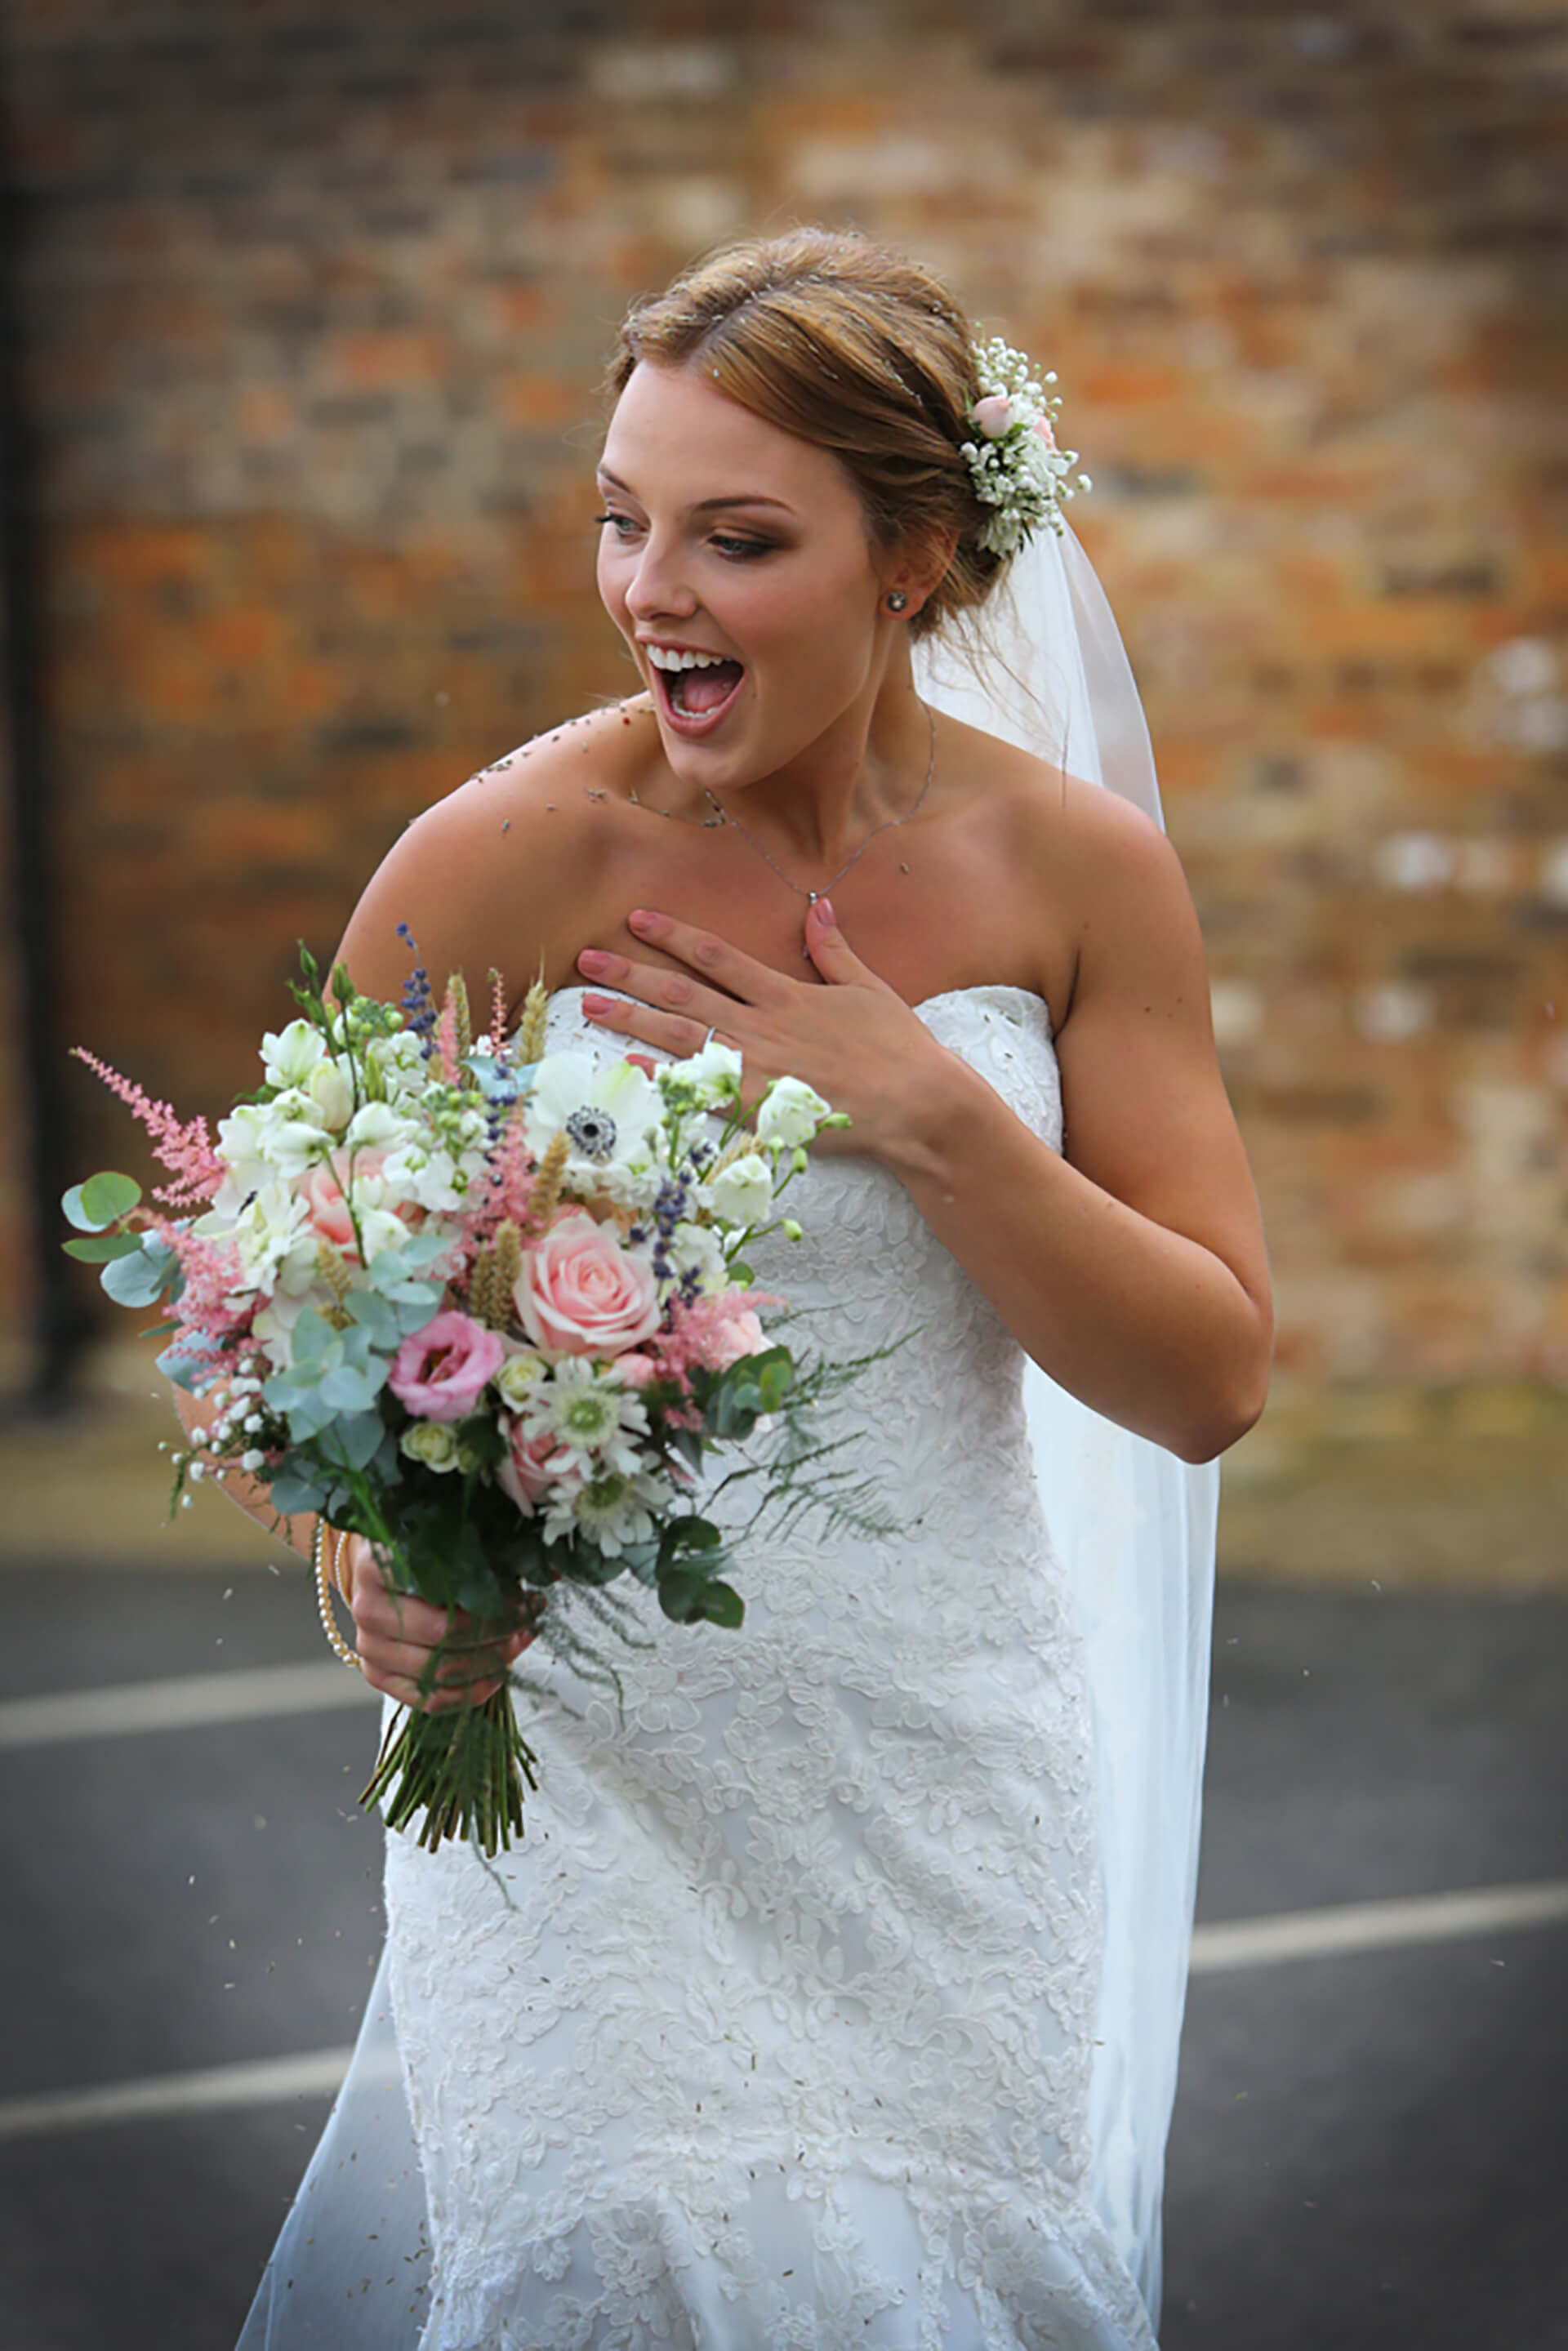 Our beautiful Tara with her stunning bouquet. Photo by Simon Stock.